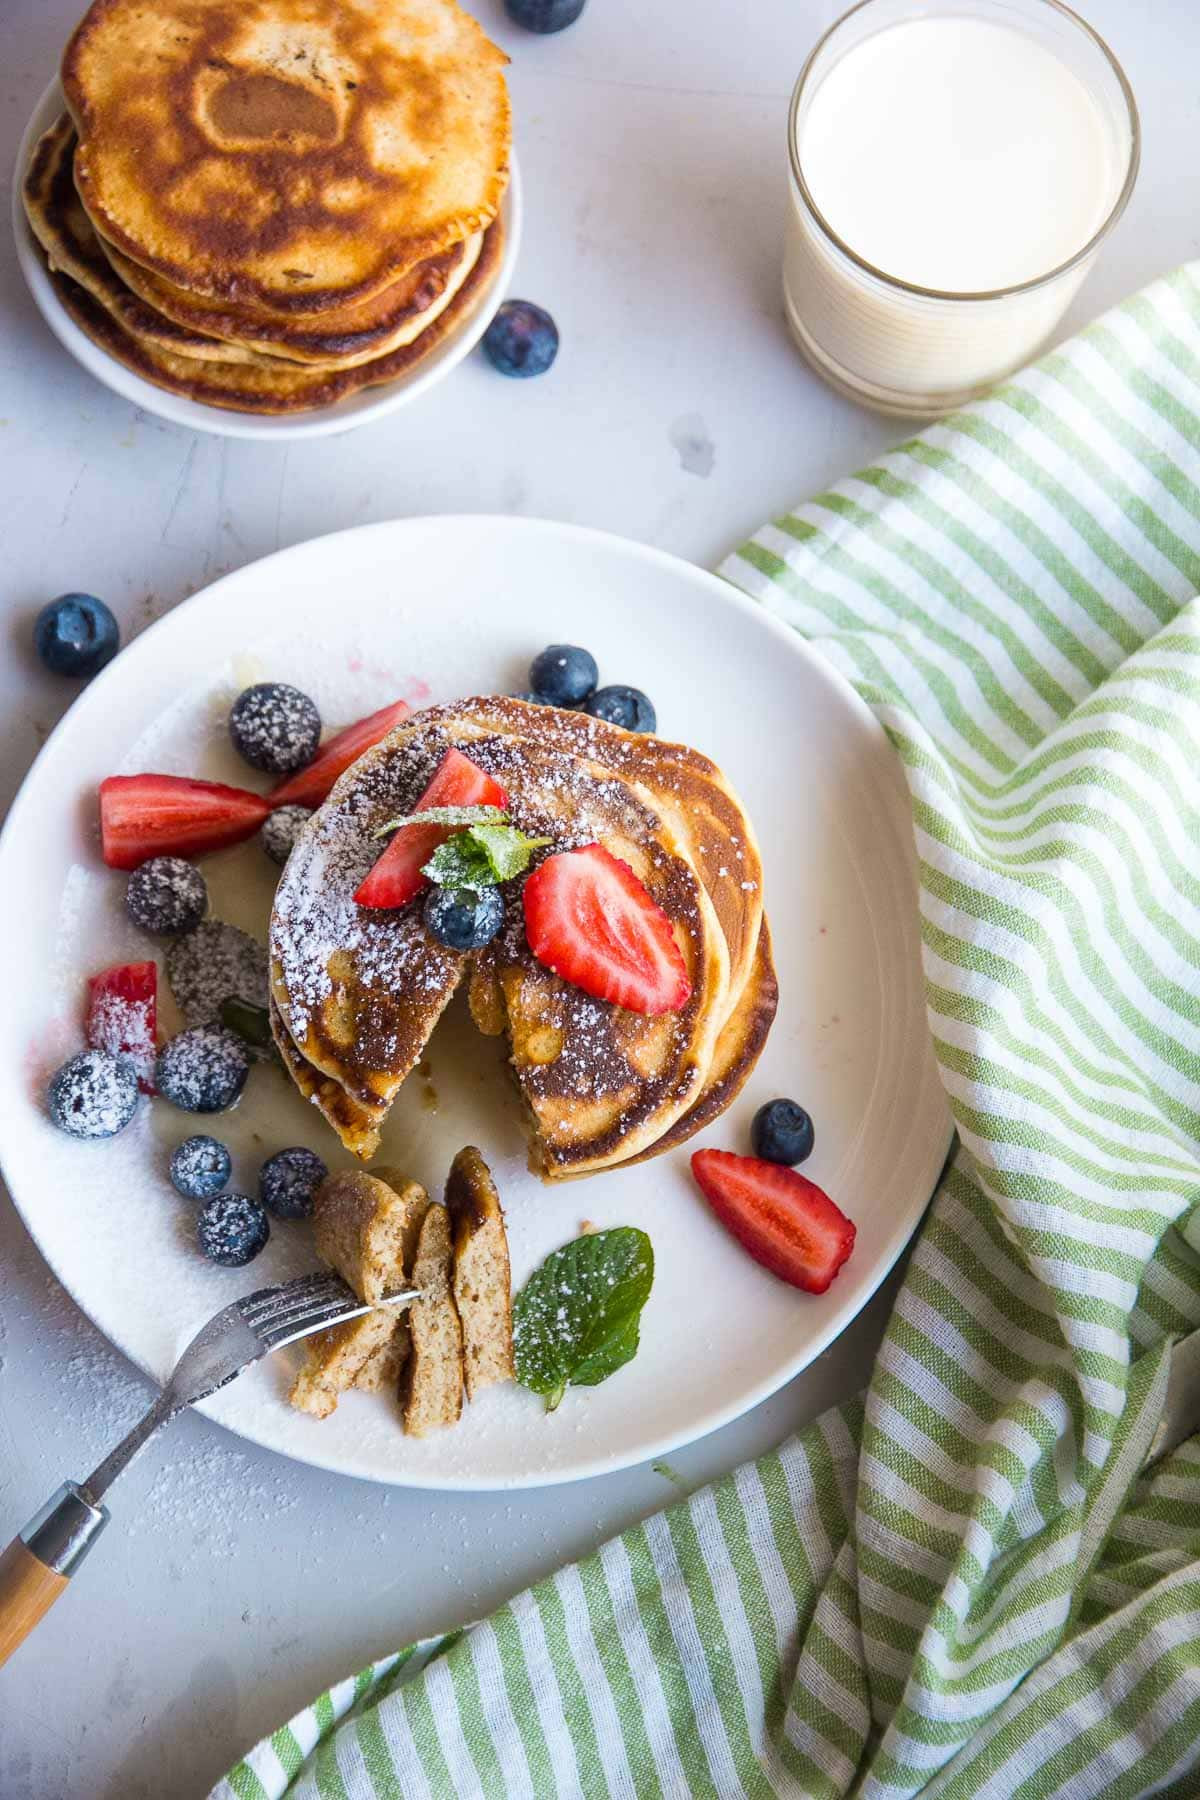 Breakfast recipe for keto almond flour pancakes that are low carb and gluten free.